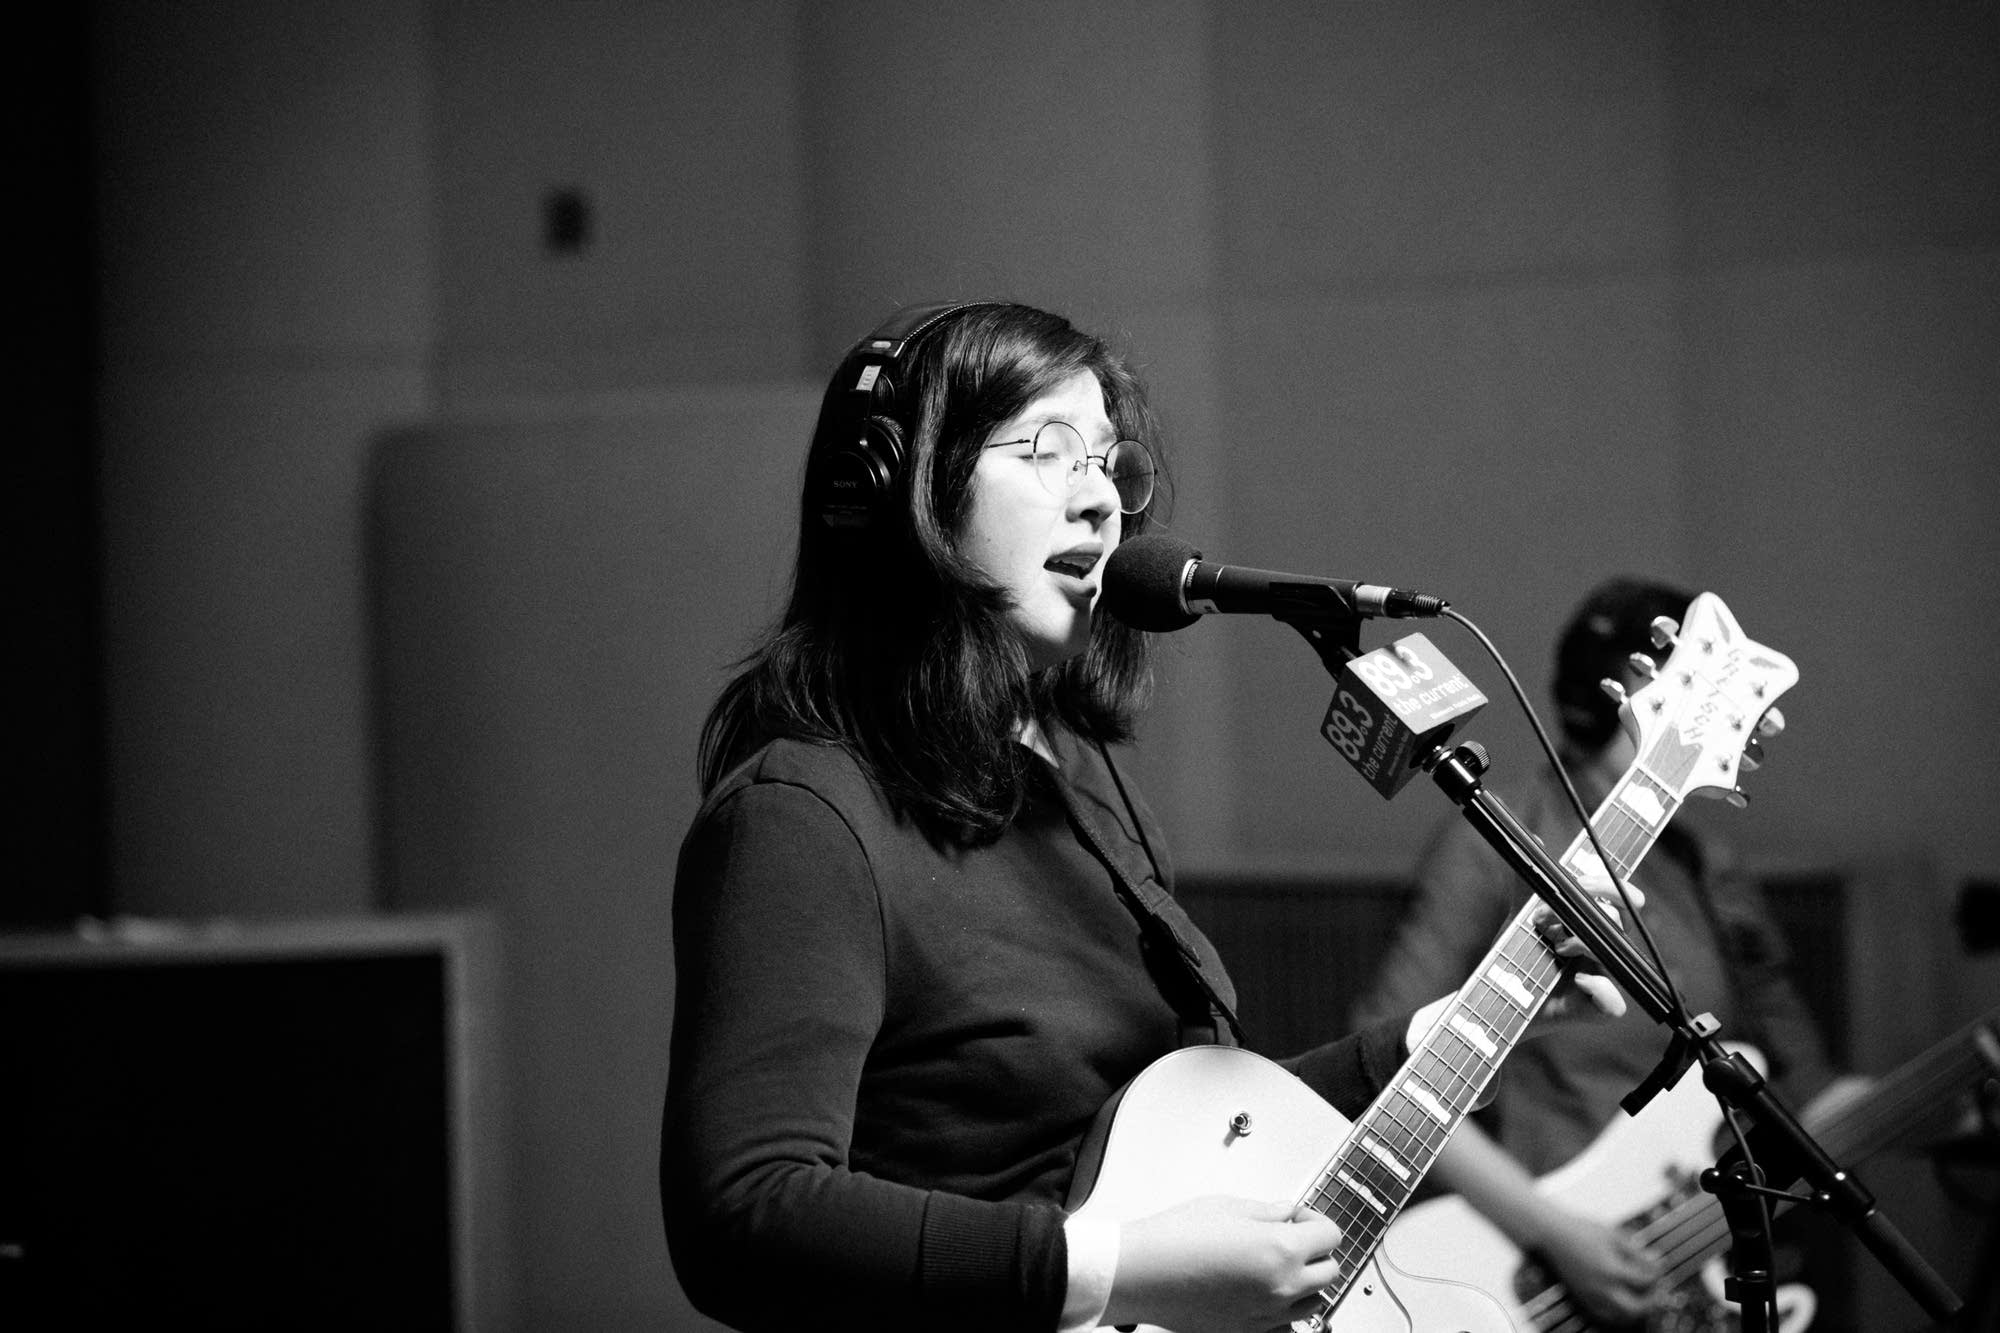 Lucy Dacus performs in The Current's studio